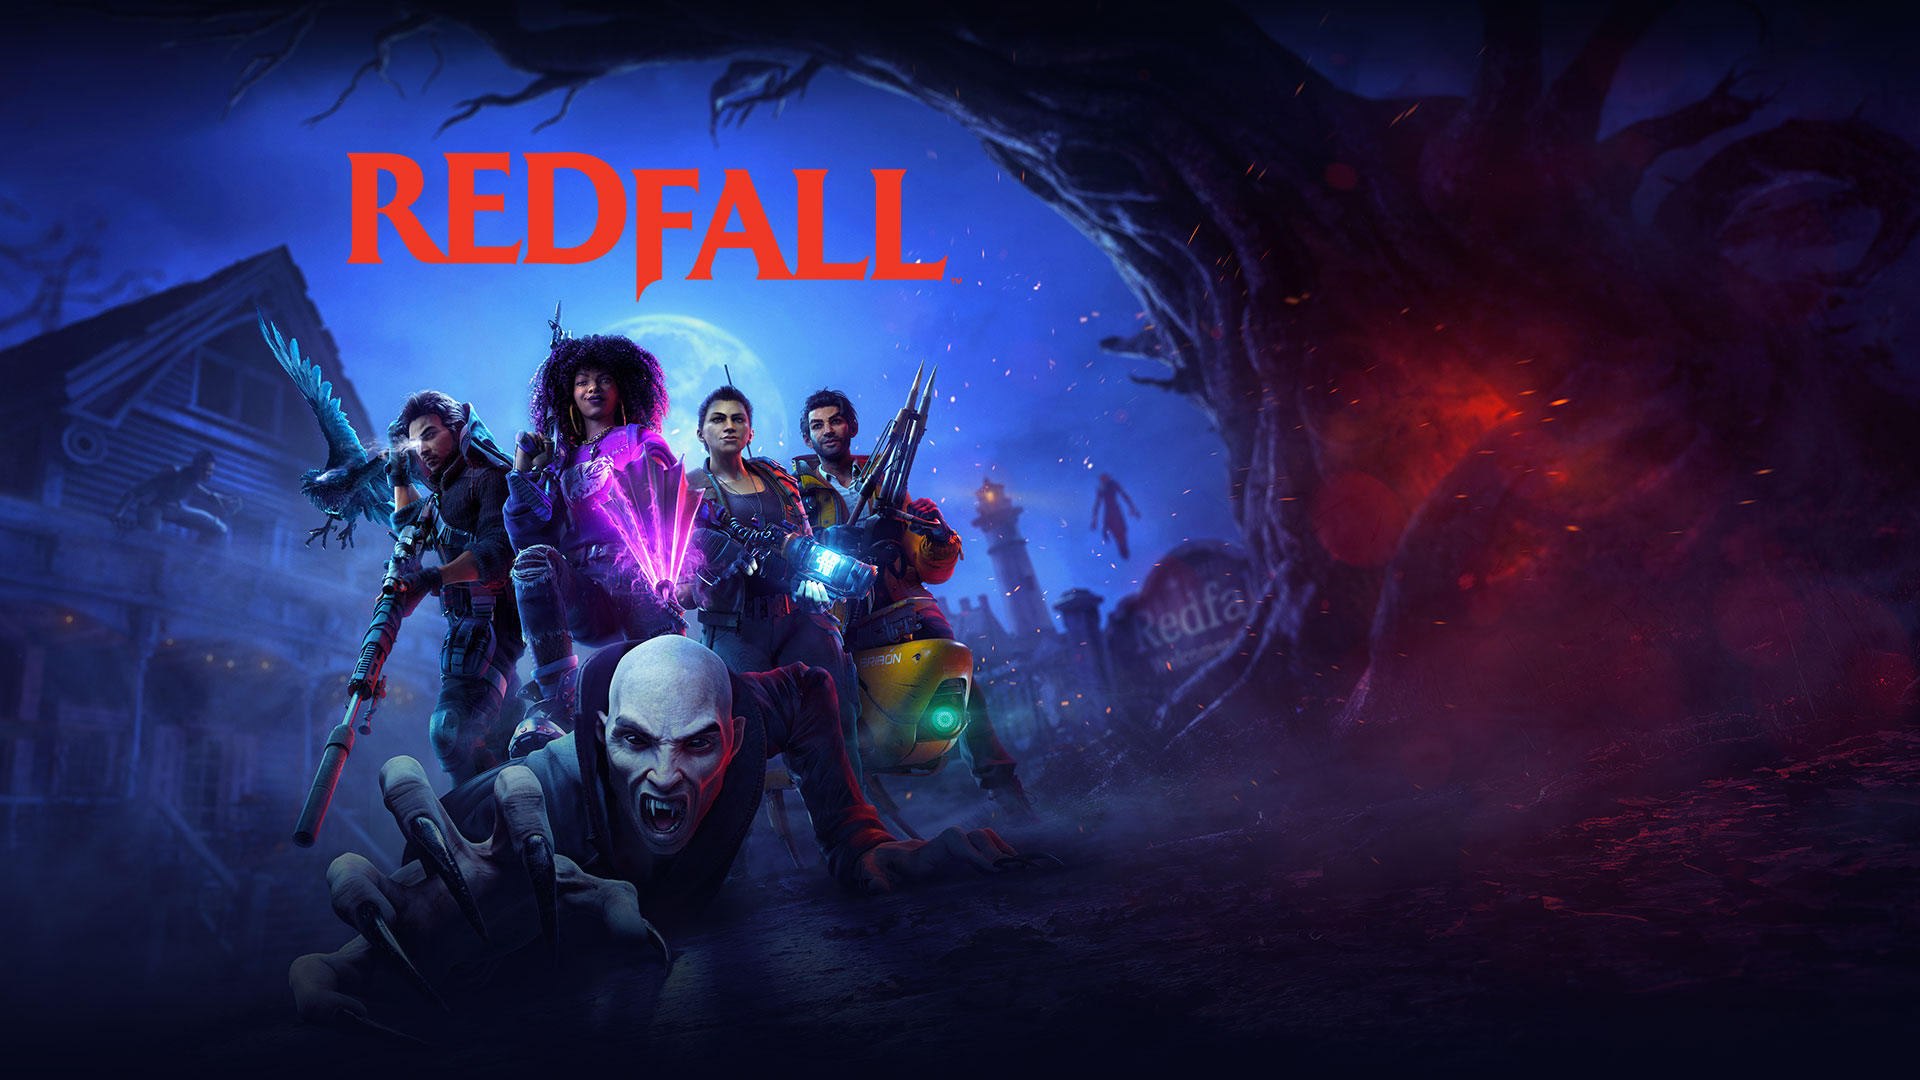 Redfall, vampire clawing to get away from a squad of characters standing over it with weapons drawn ready to extinguish its existence.